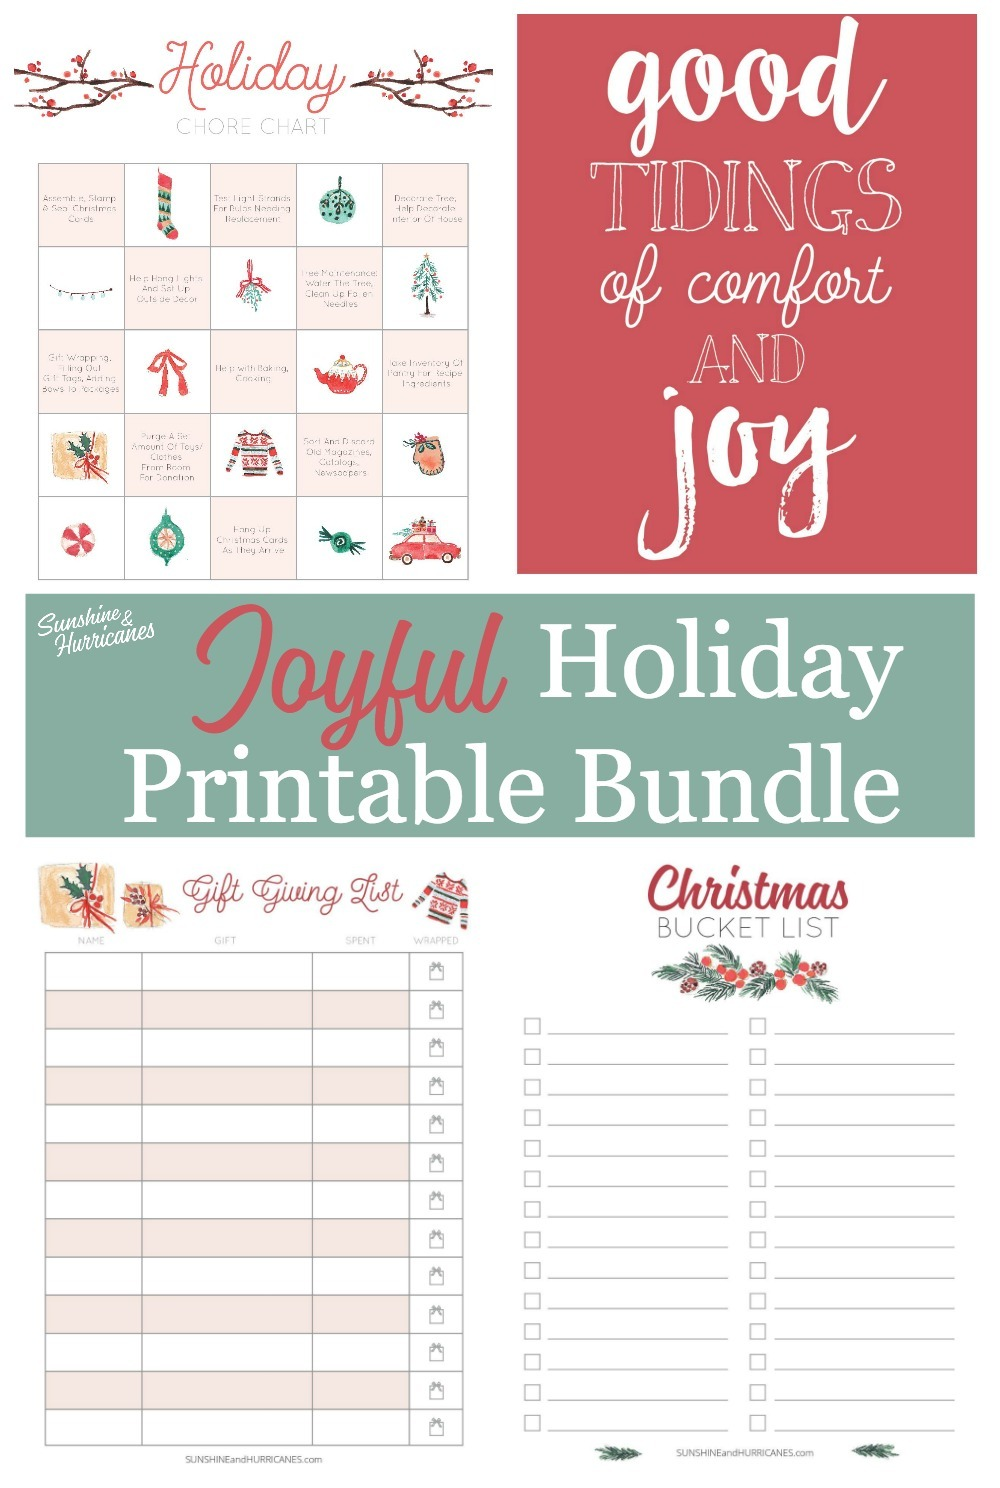 Joyful Holiday Printable Bundle includes holiday chore chart, gift giving list, Christmas Bucket list and Joyful Christmas Quote Wall Art.